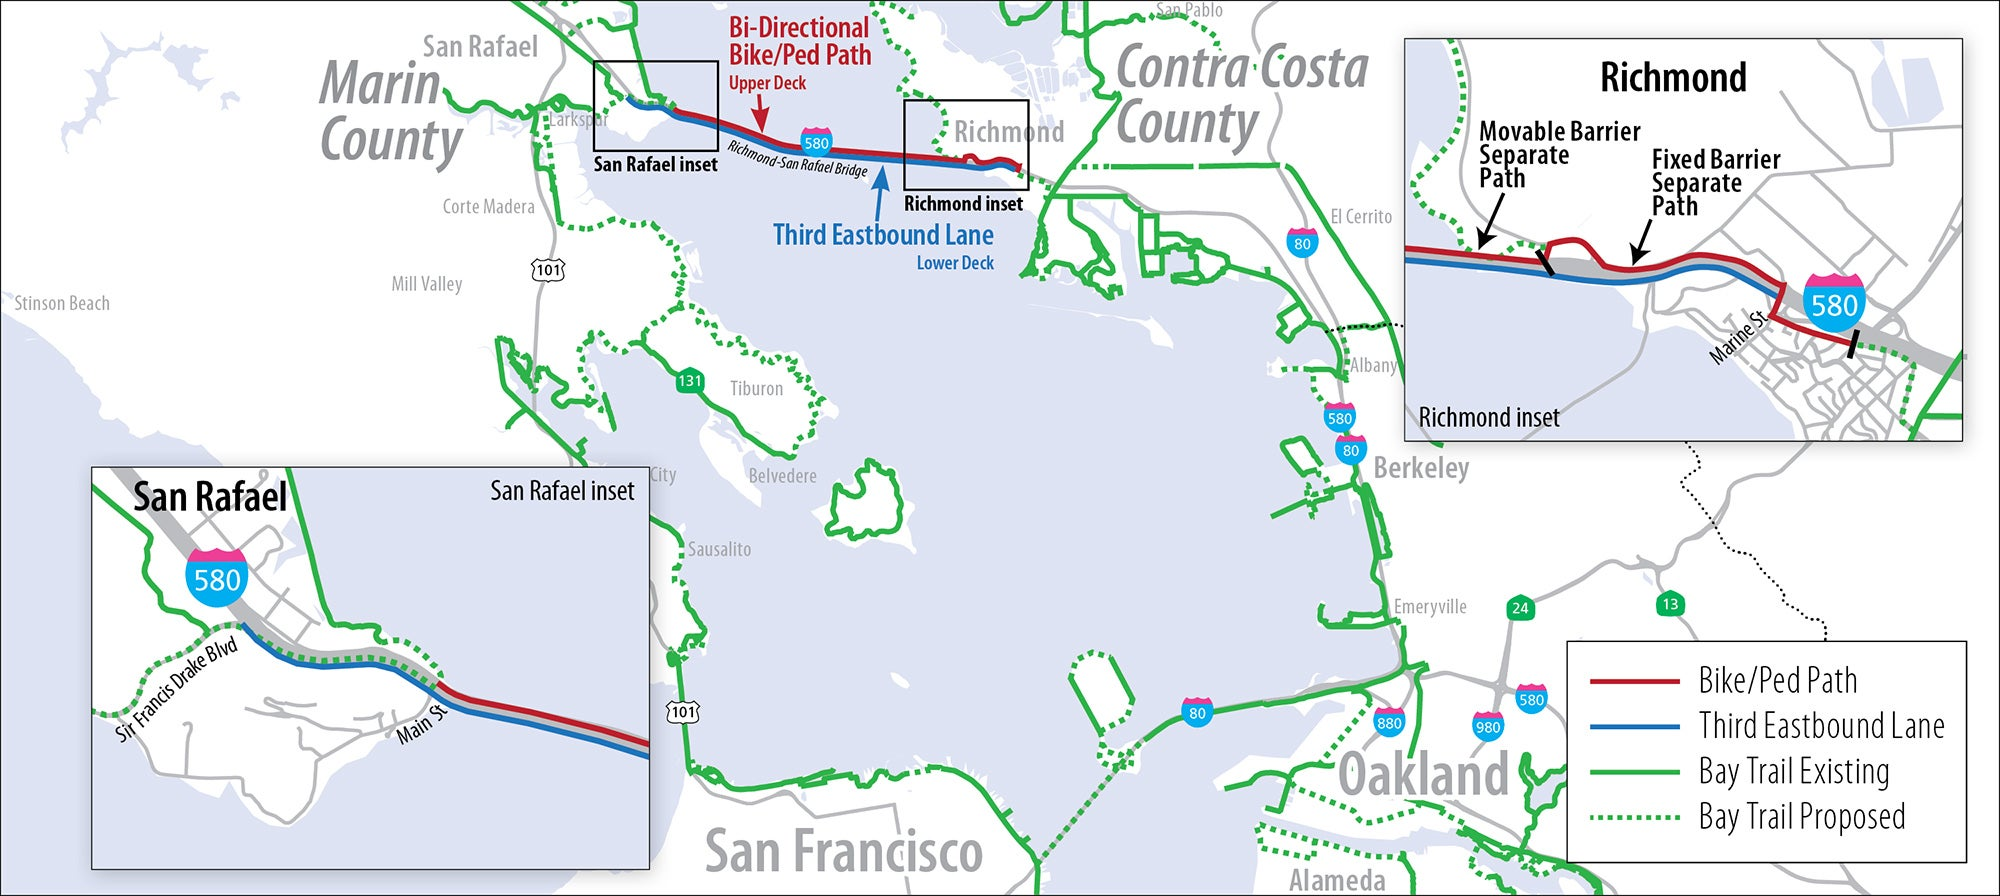 Map showing location and highlights of the proposed project.